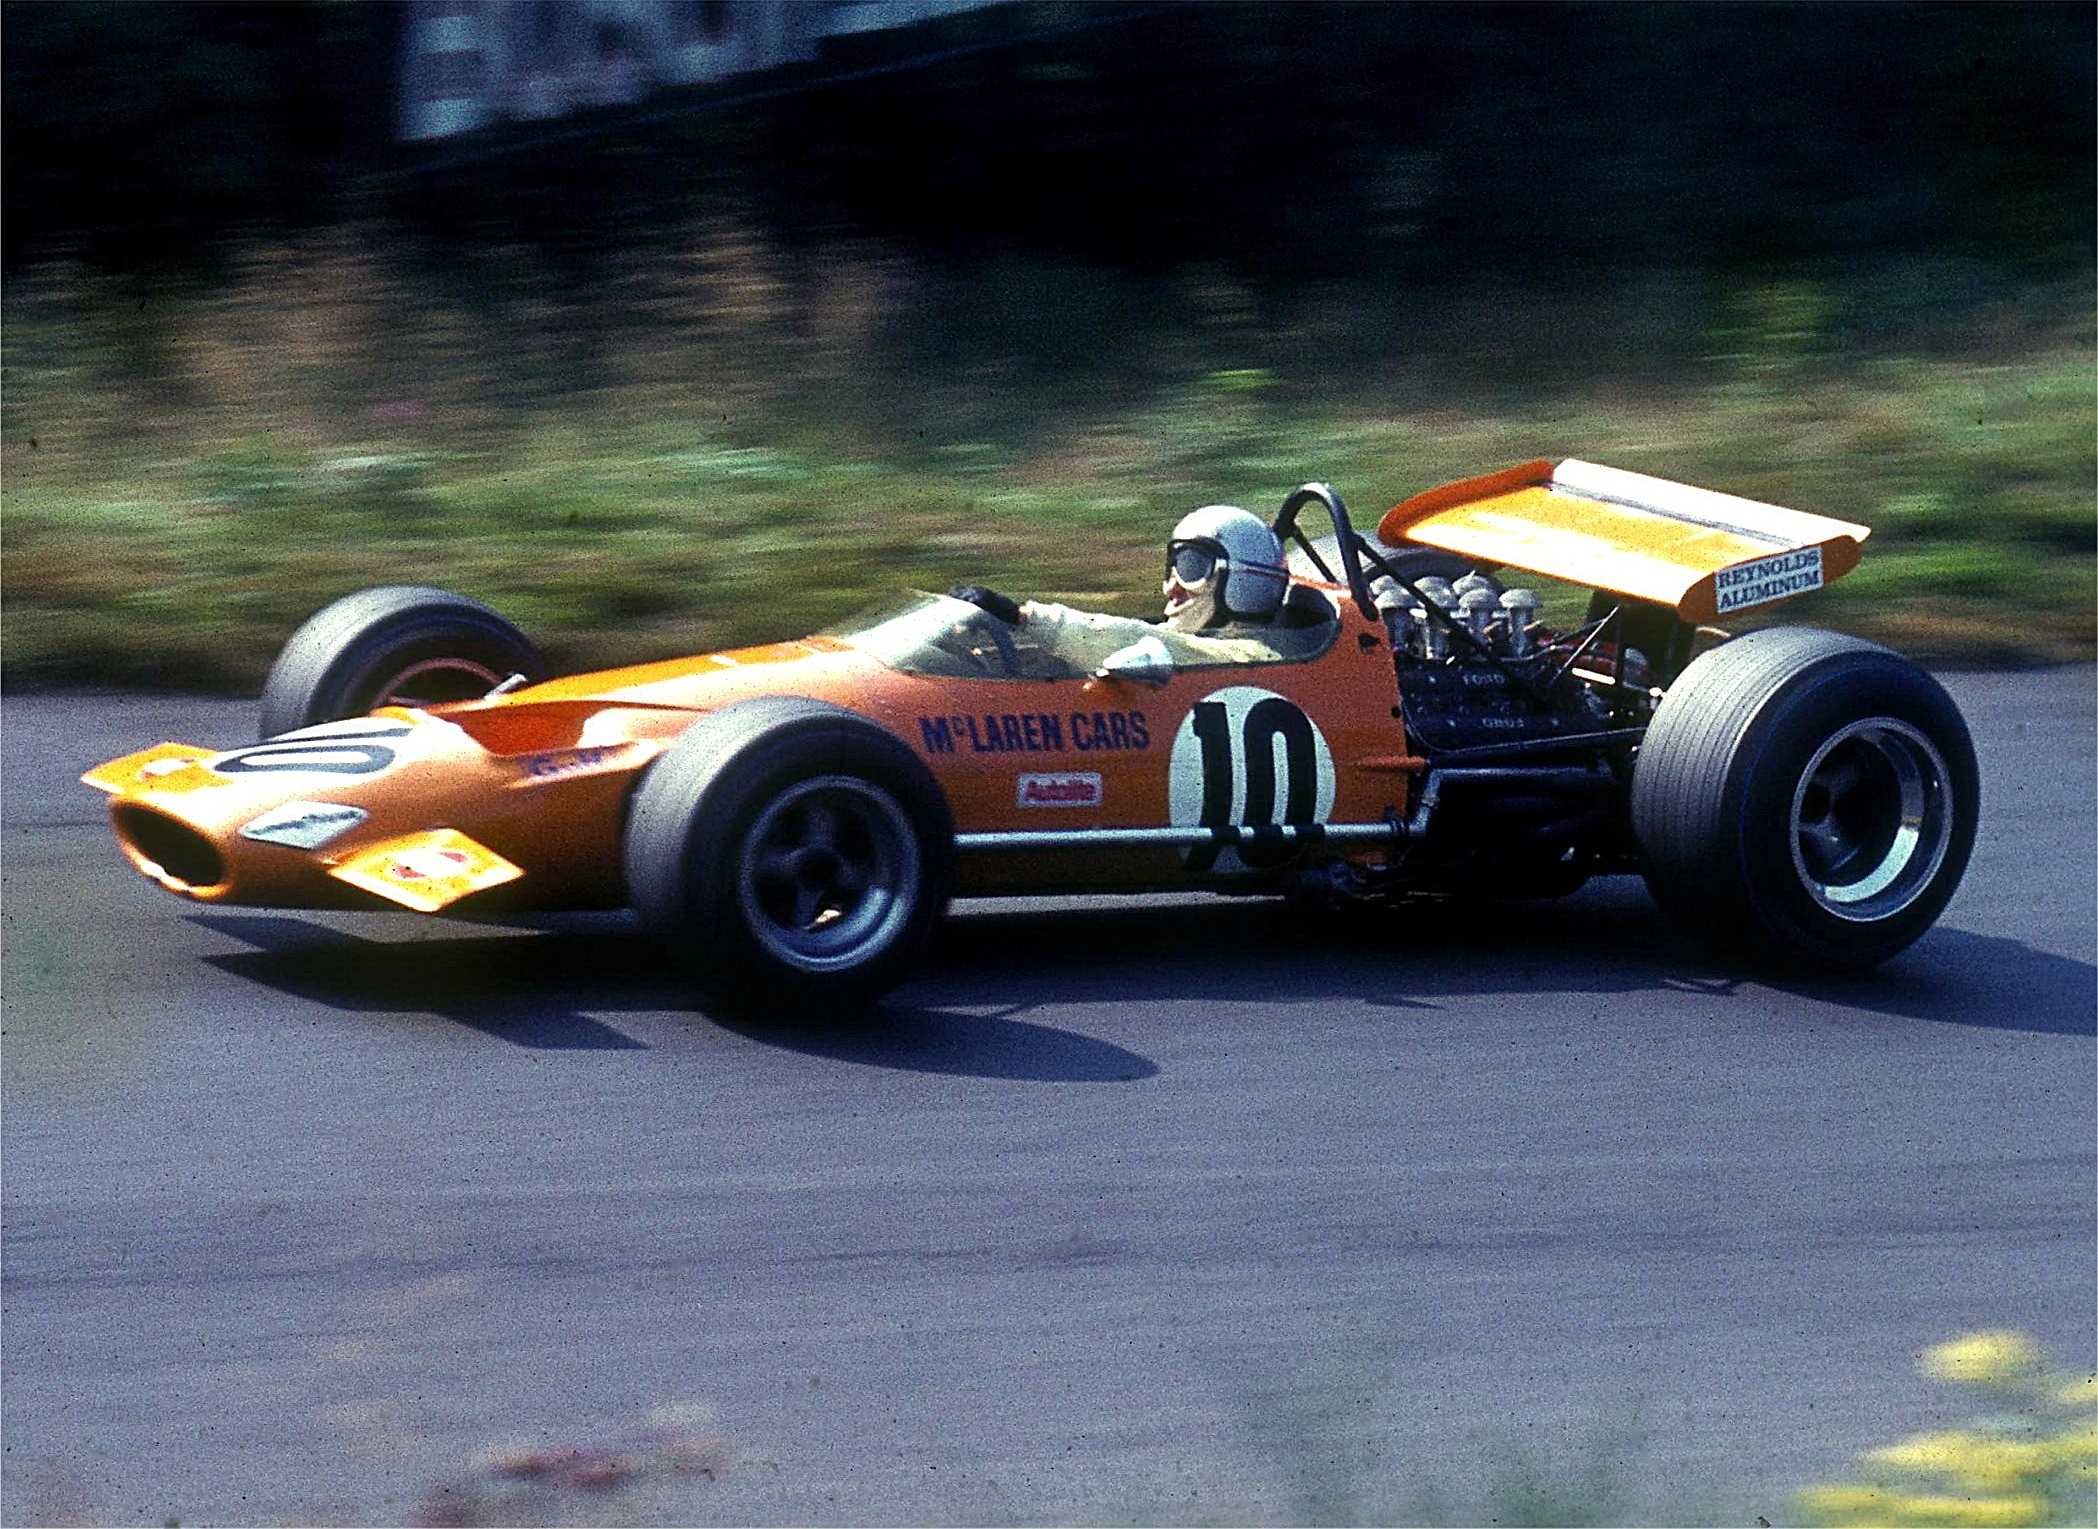 1966 HONDA F-1 GP The McLaren M7A of 1968 gave McLaren their first Formula One wins. It is driven here by Bruce McLaren at the Nürburgring in 1969.